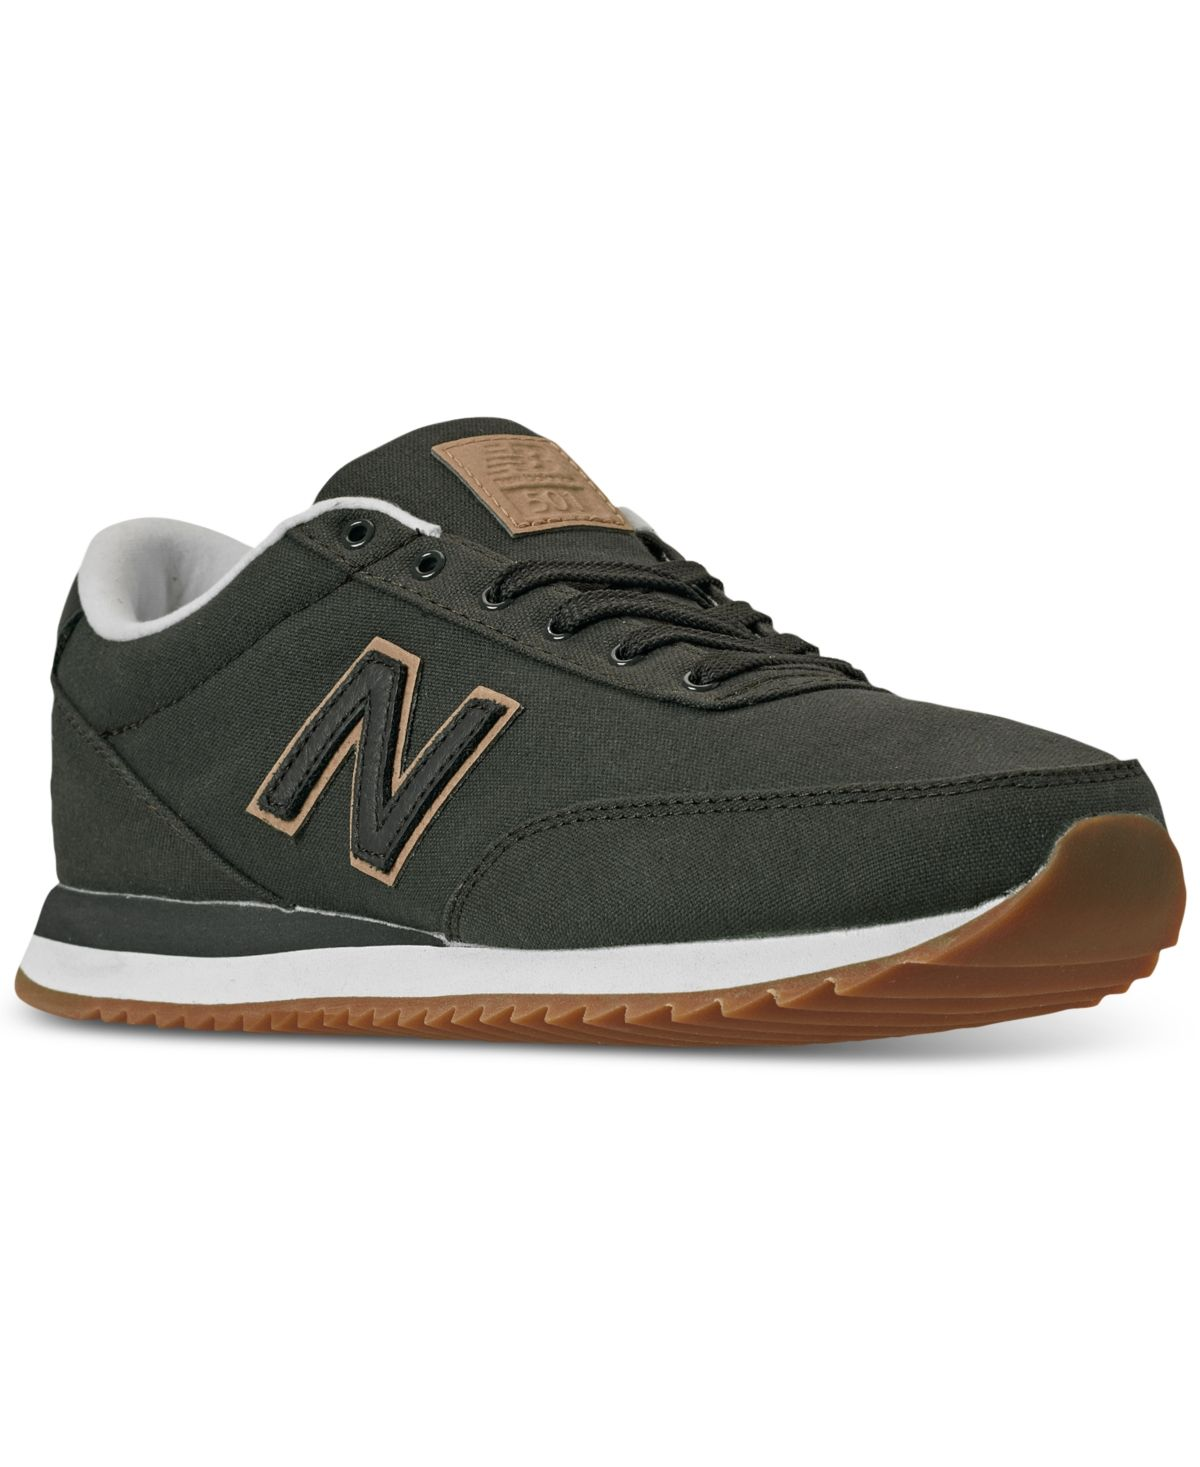 New balance mens 501 canvas gum casual sneakers from